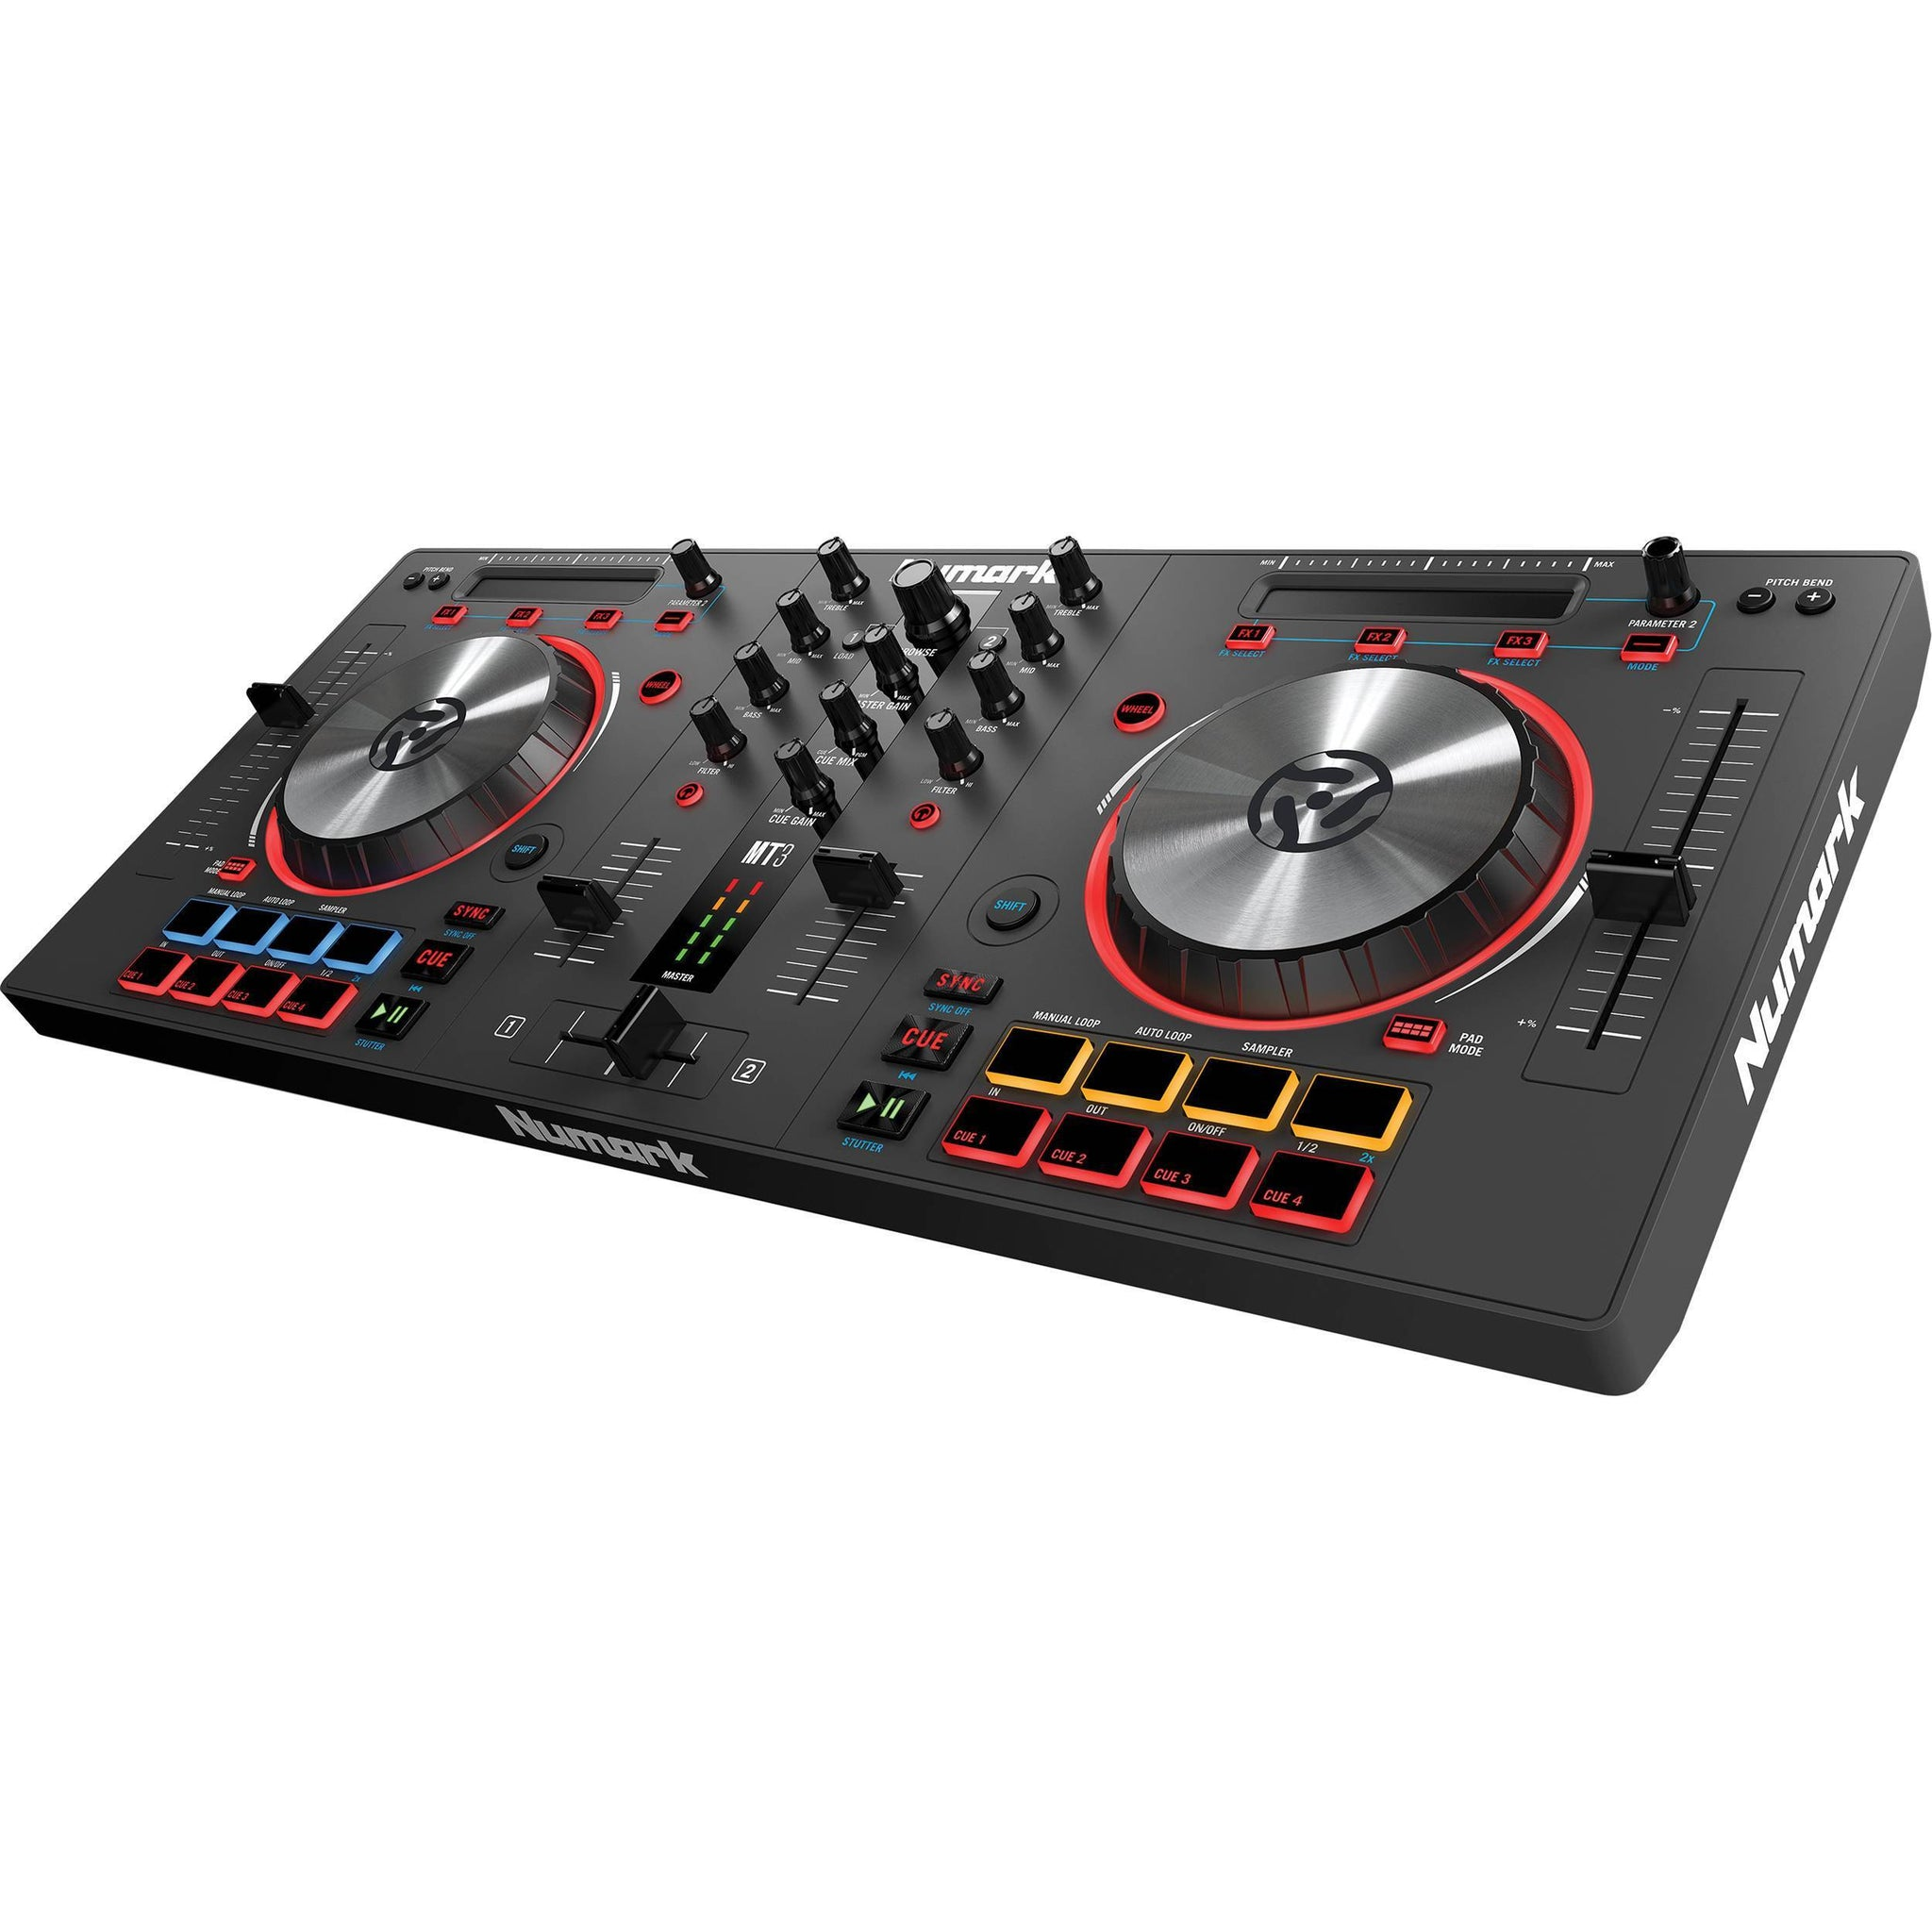 Numark Mixtrack 3 - DJ Controller for Virtual DJ Software